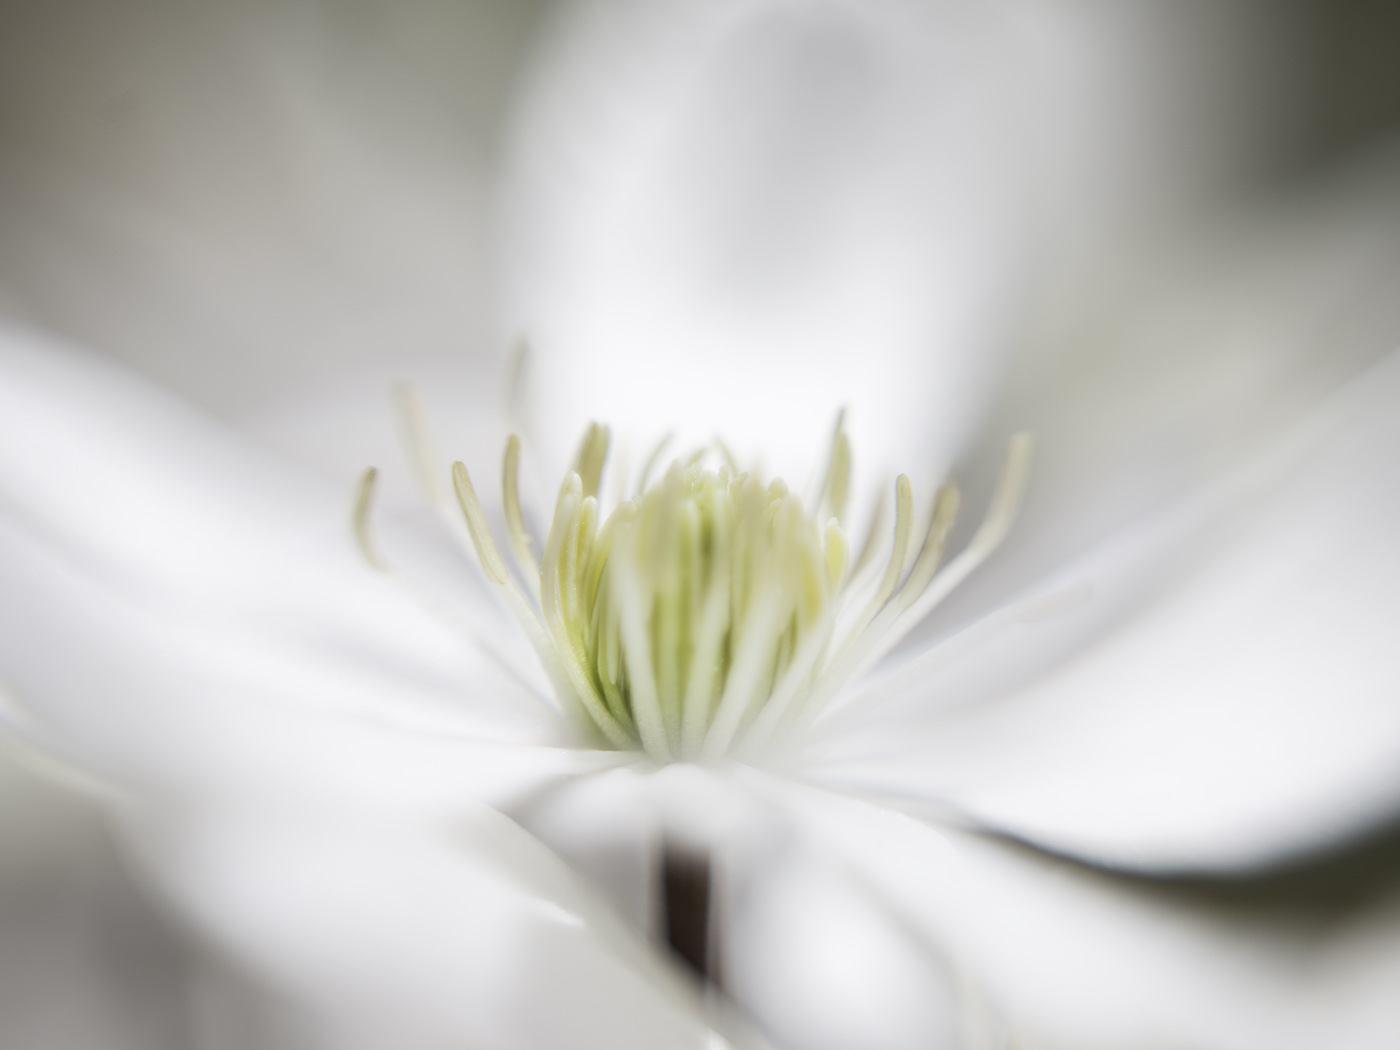 White bloom, macro photography © Andrée Fredette